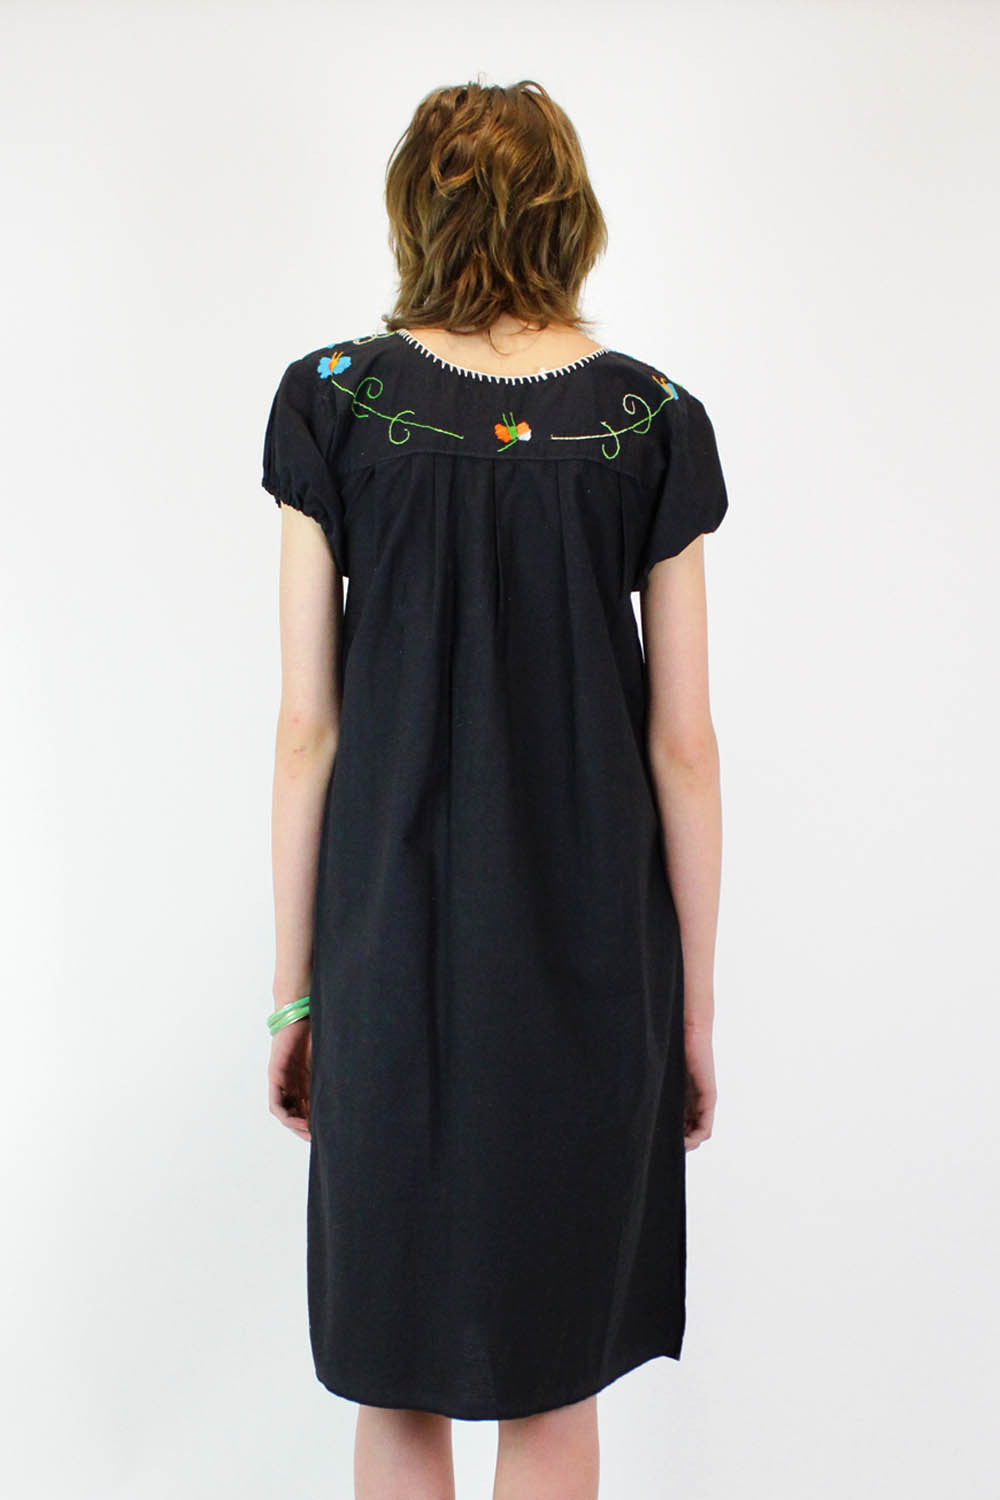 Mexican Embroidered Smock Dress S